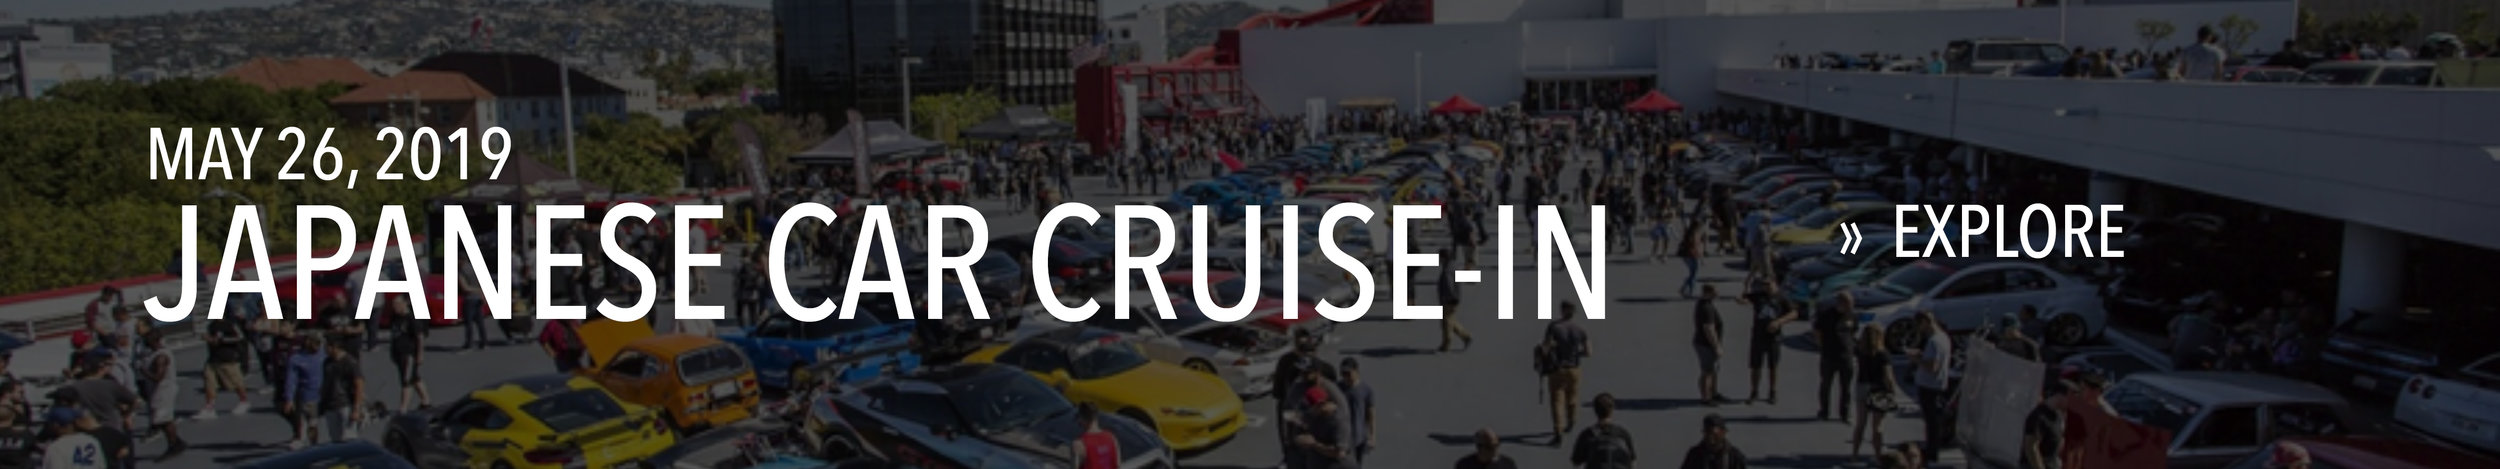 Japanese Car Cruise-In on May 26, 2019